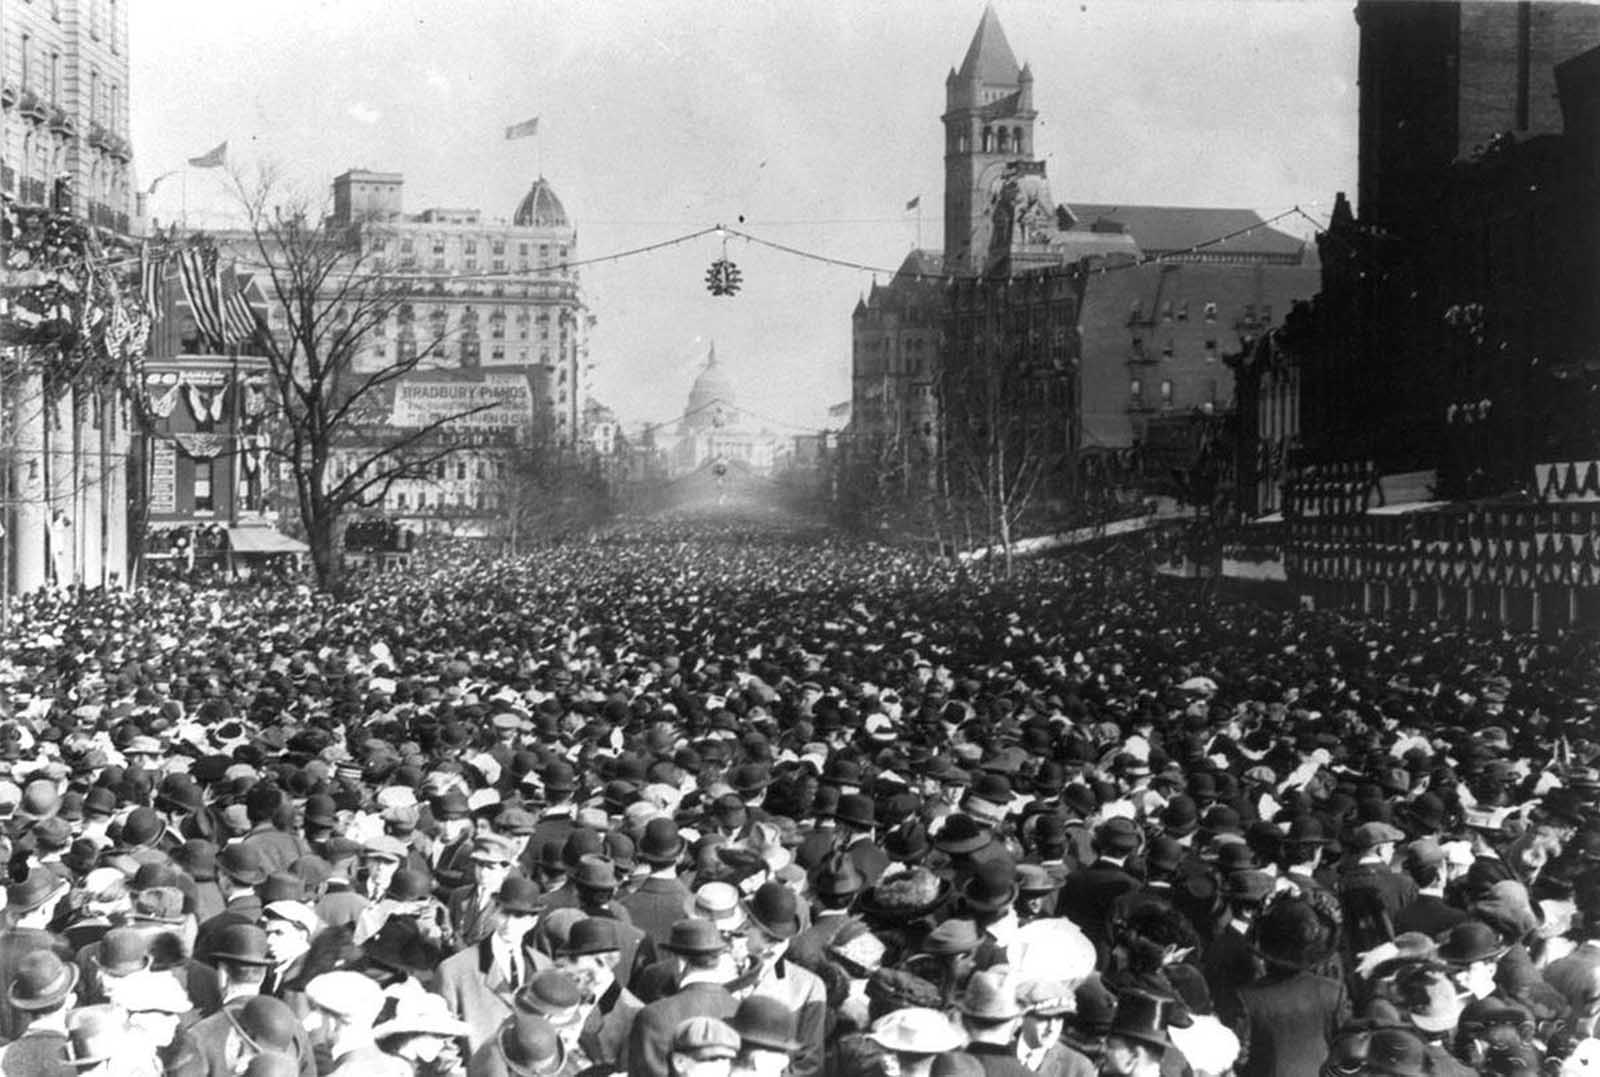 Pennsylvania Avenue, completely choked with spectators during the Suffrage Parade, on March 3, 1913.